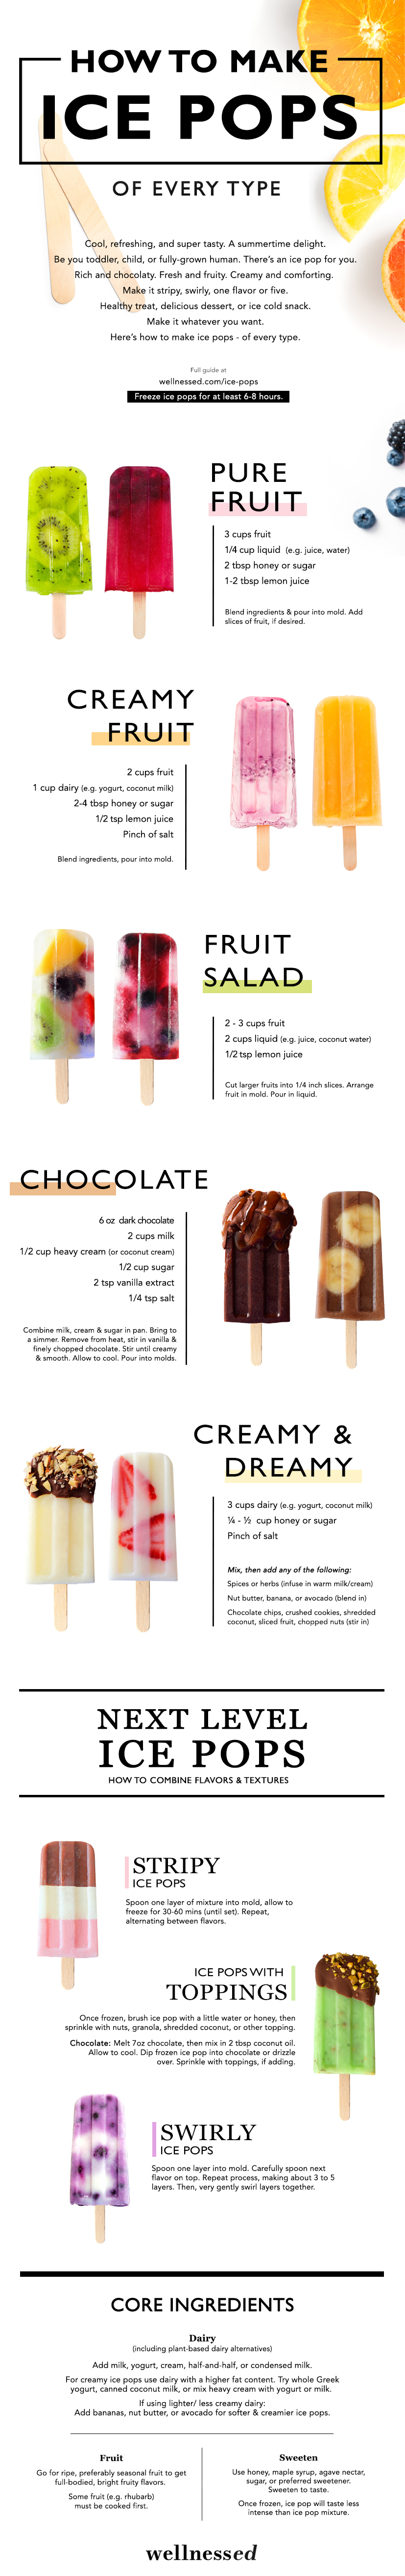 How to Make Popsicles Infographic